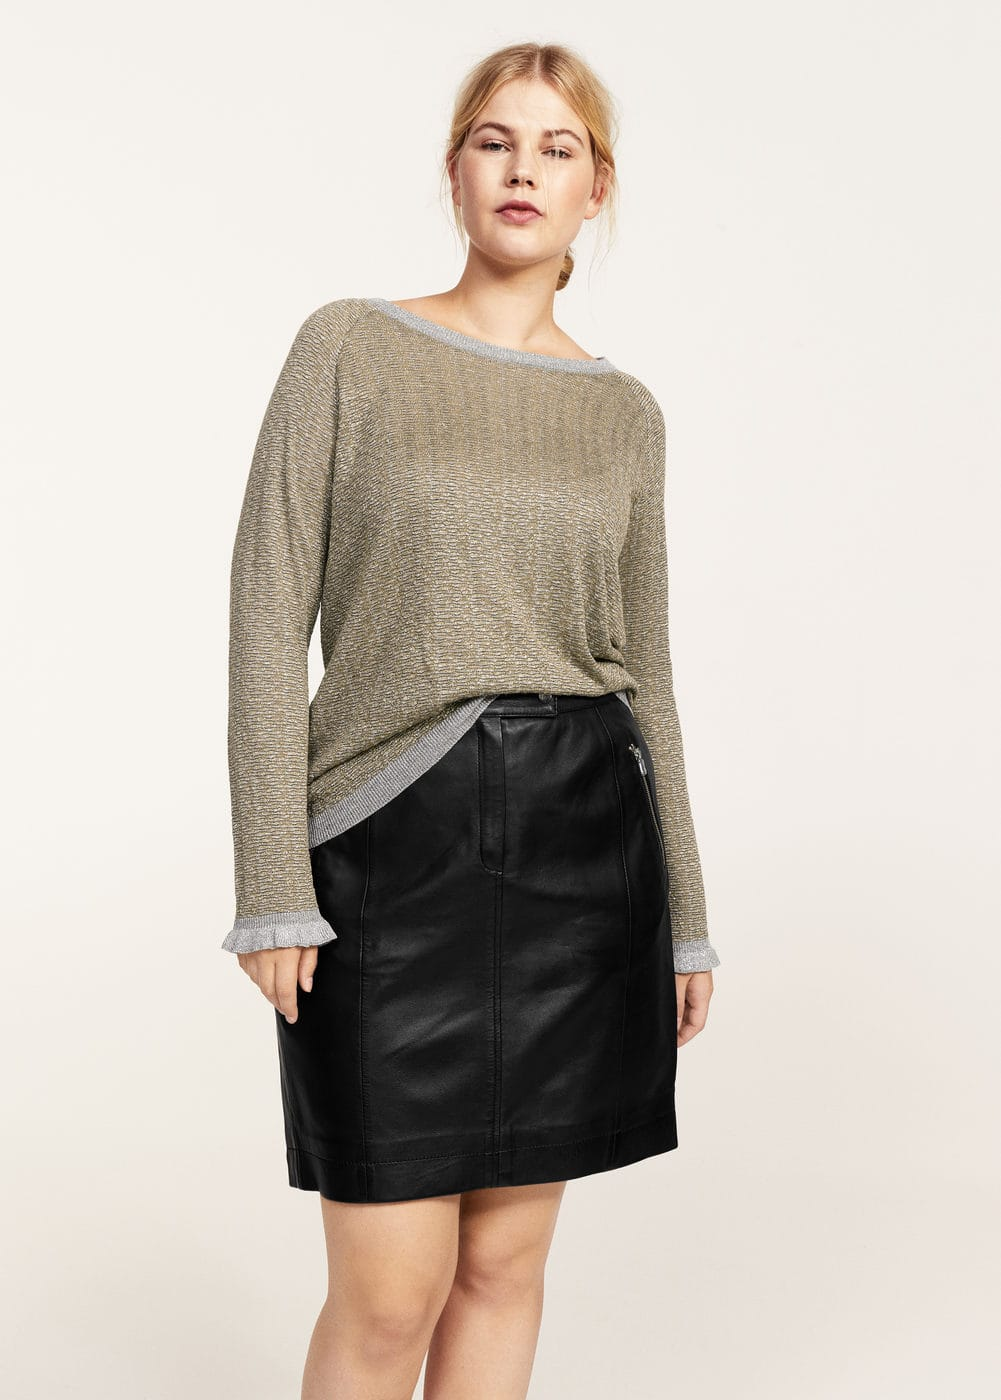 Metallic thread textured sweater | VIOLETA BY MANGO